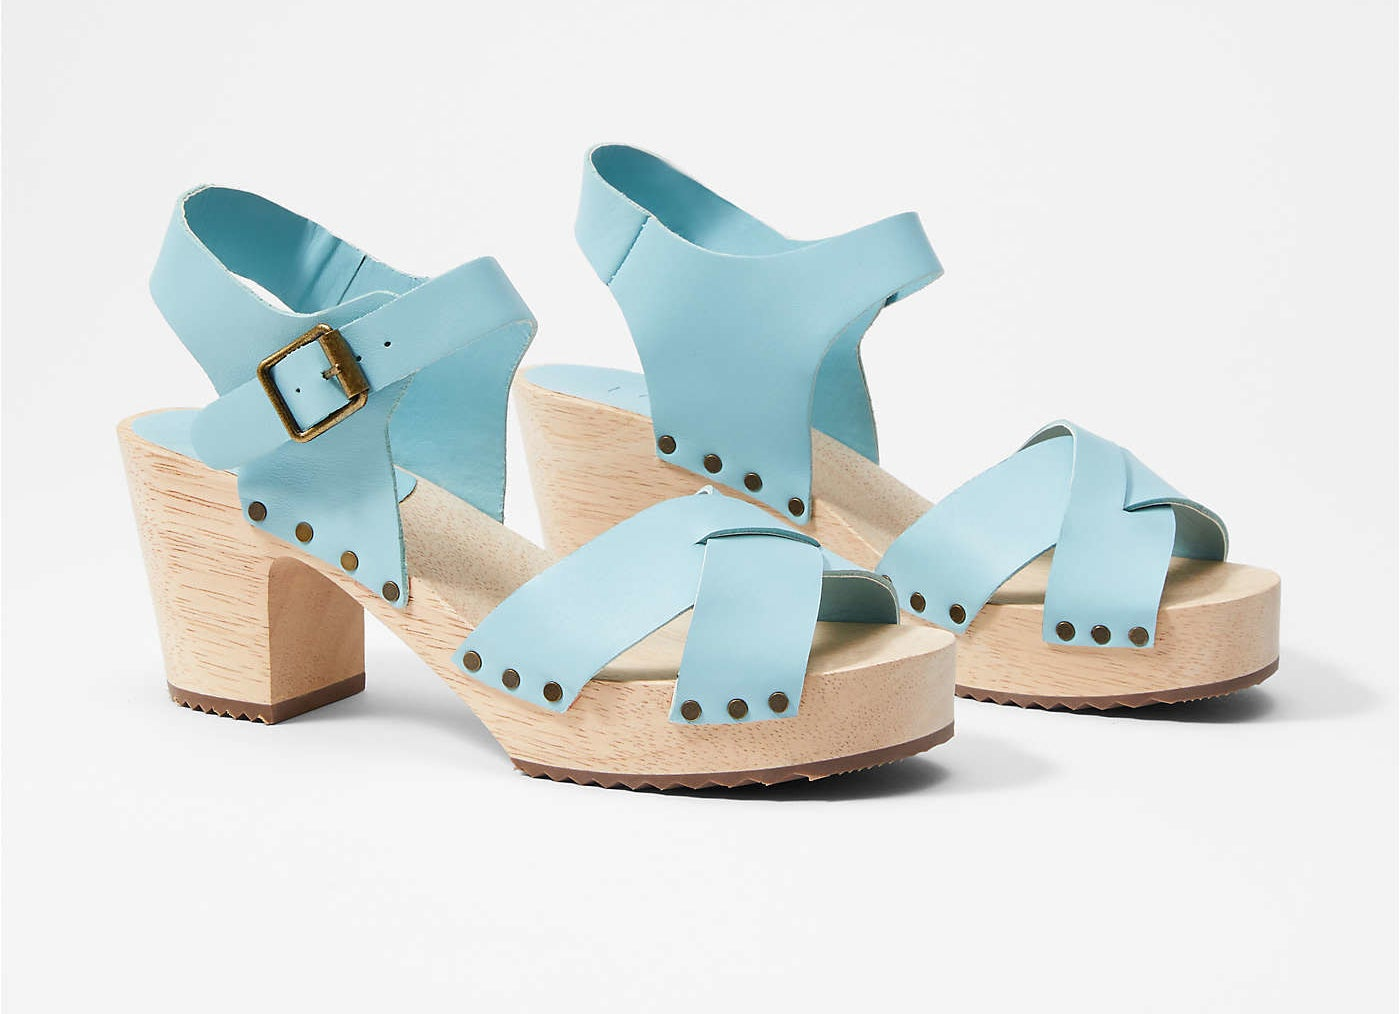 the tan wood platform clogs with blue criss-cross straps across the toe and buckle ankel strap